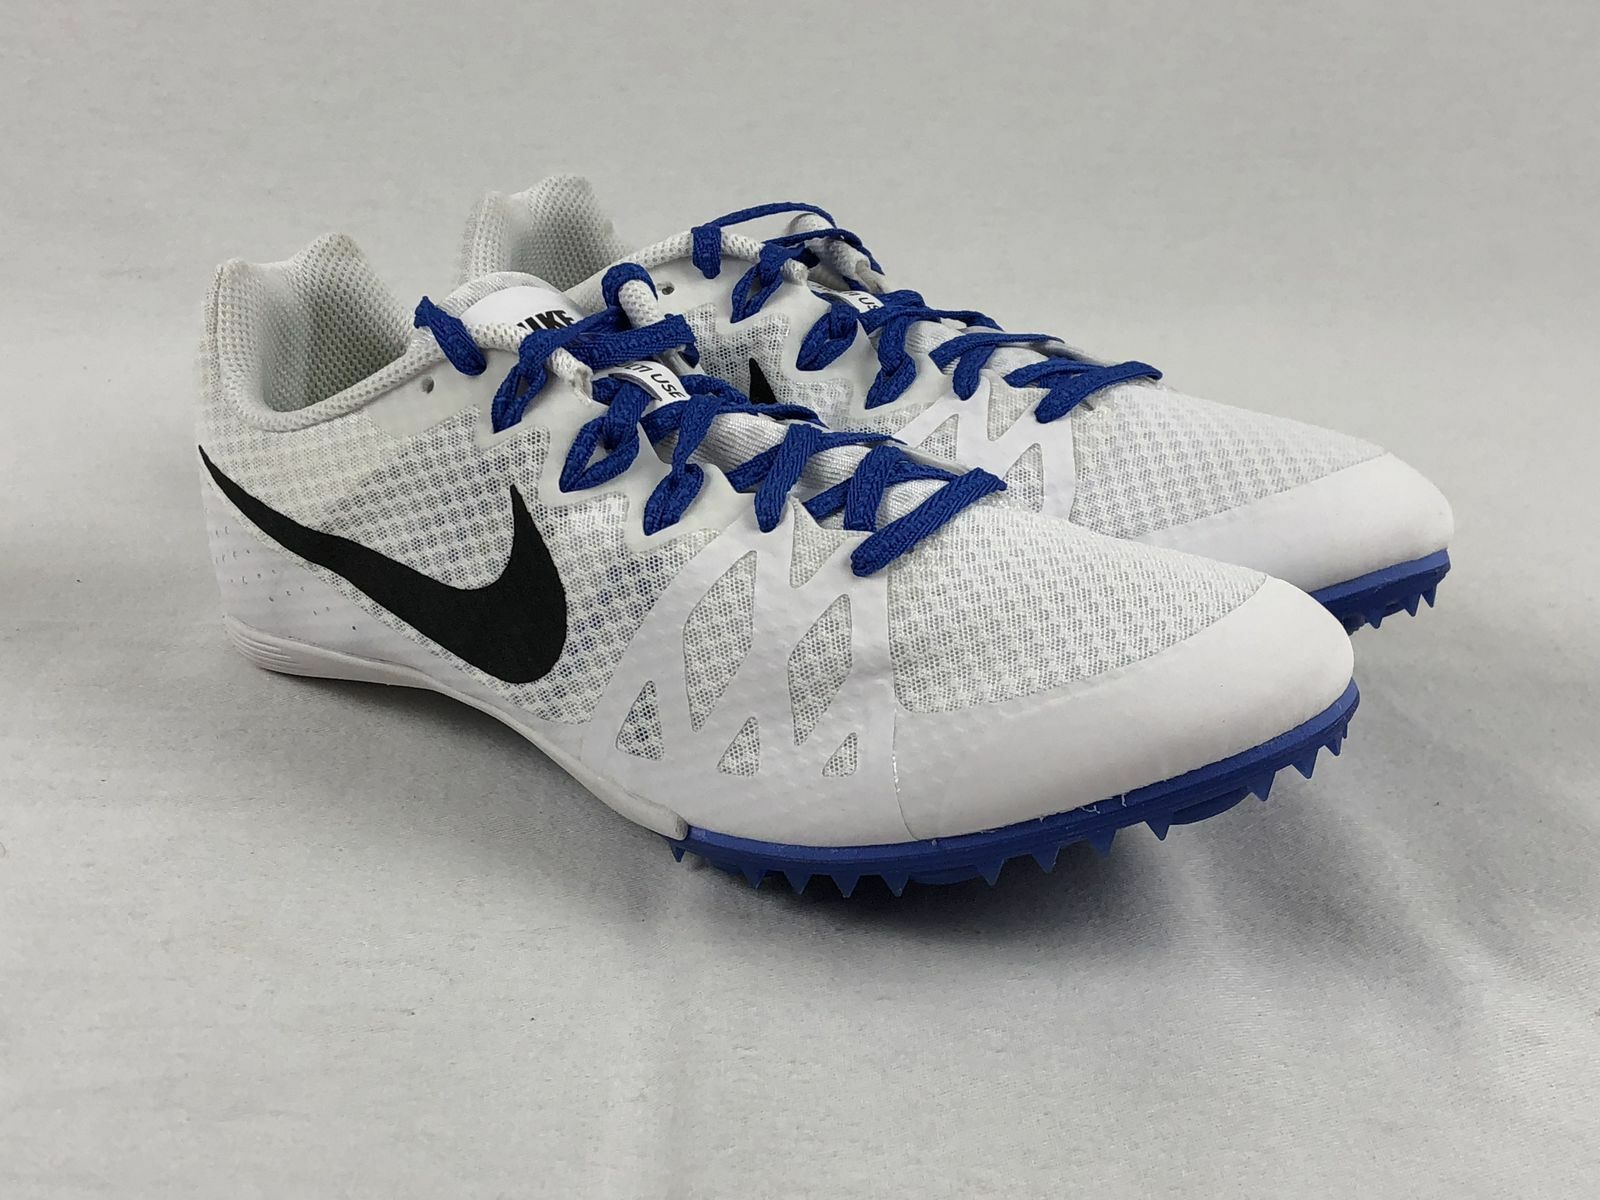 NEW Nike Zoom Rival M8 - White w  bluee Track Spikes (Men's Multiple Sizes)